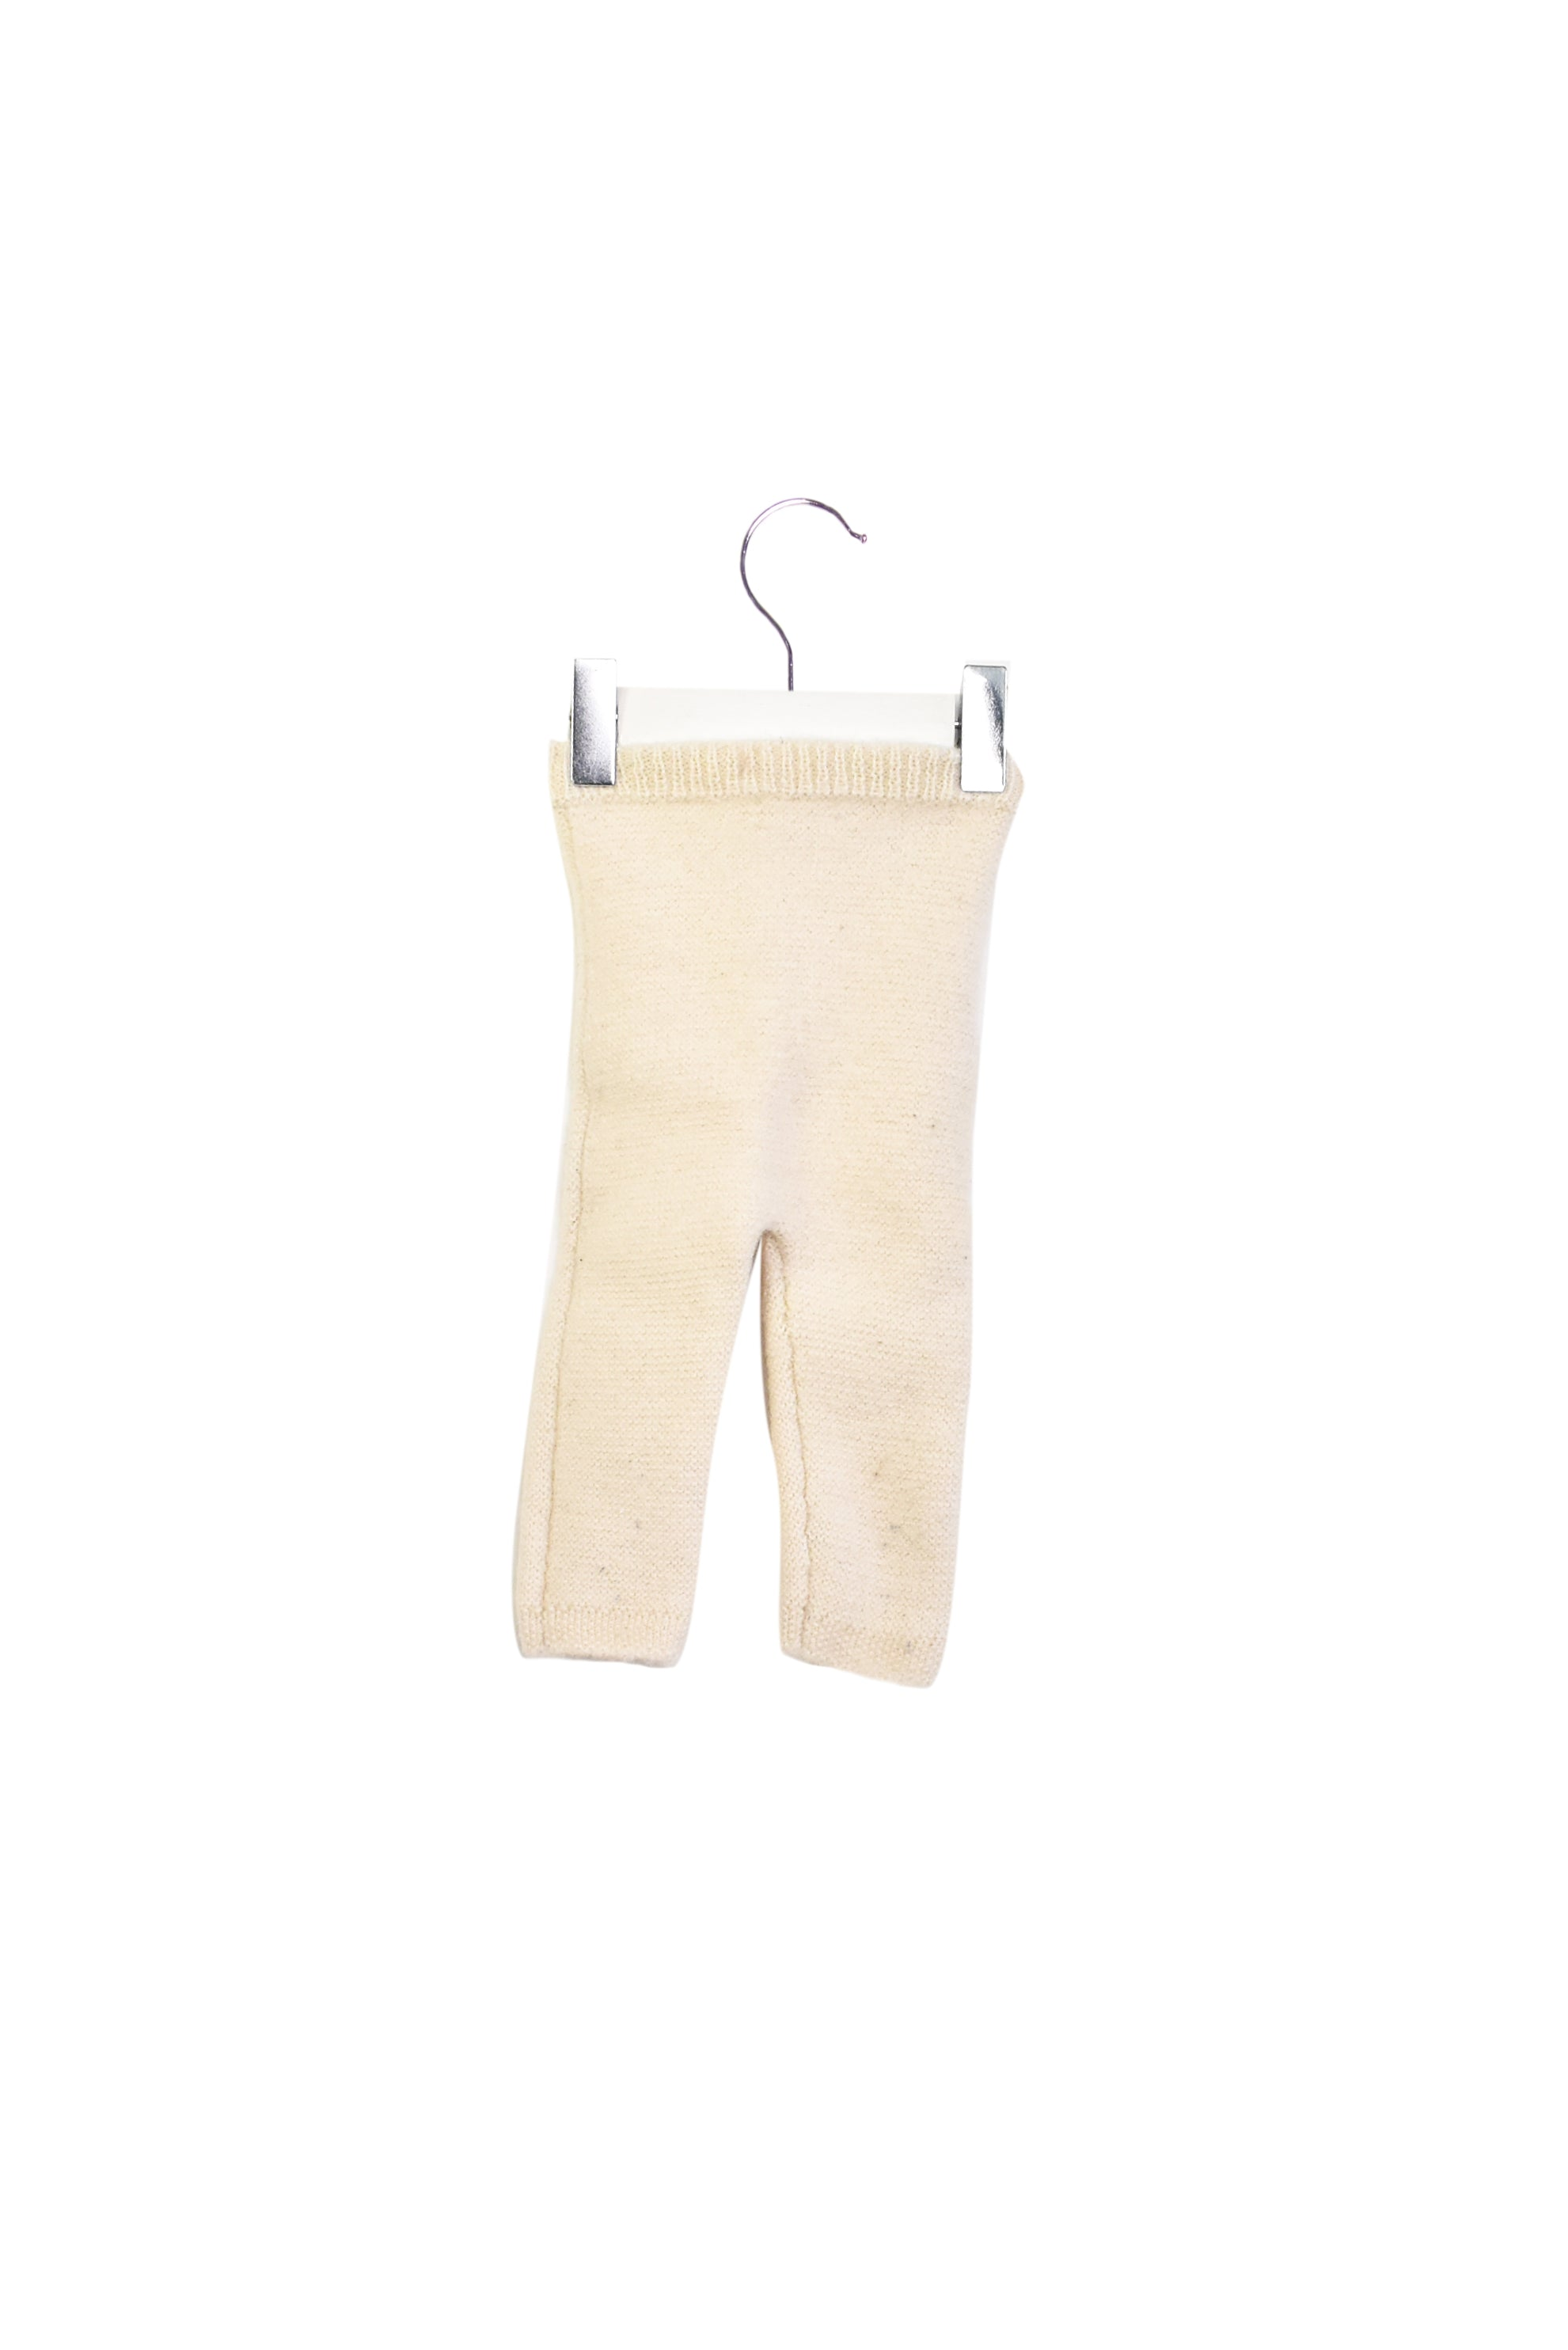 10013491 Bonpoint Baby~Pants 3M at Retykle